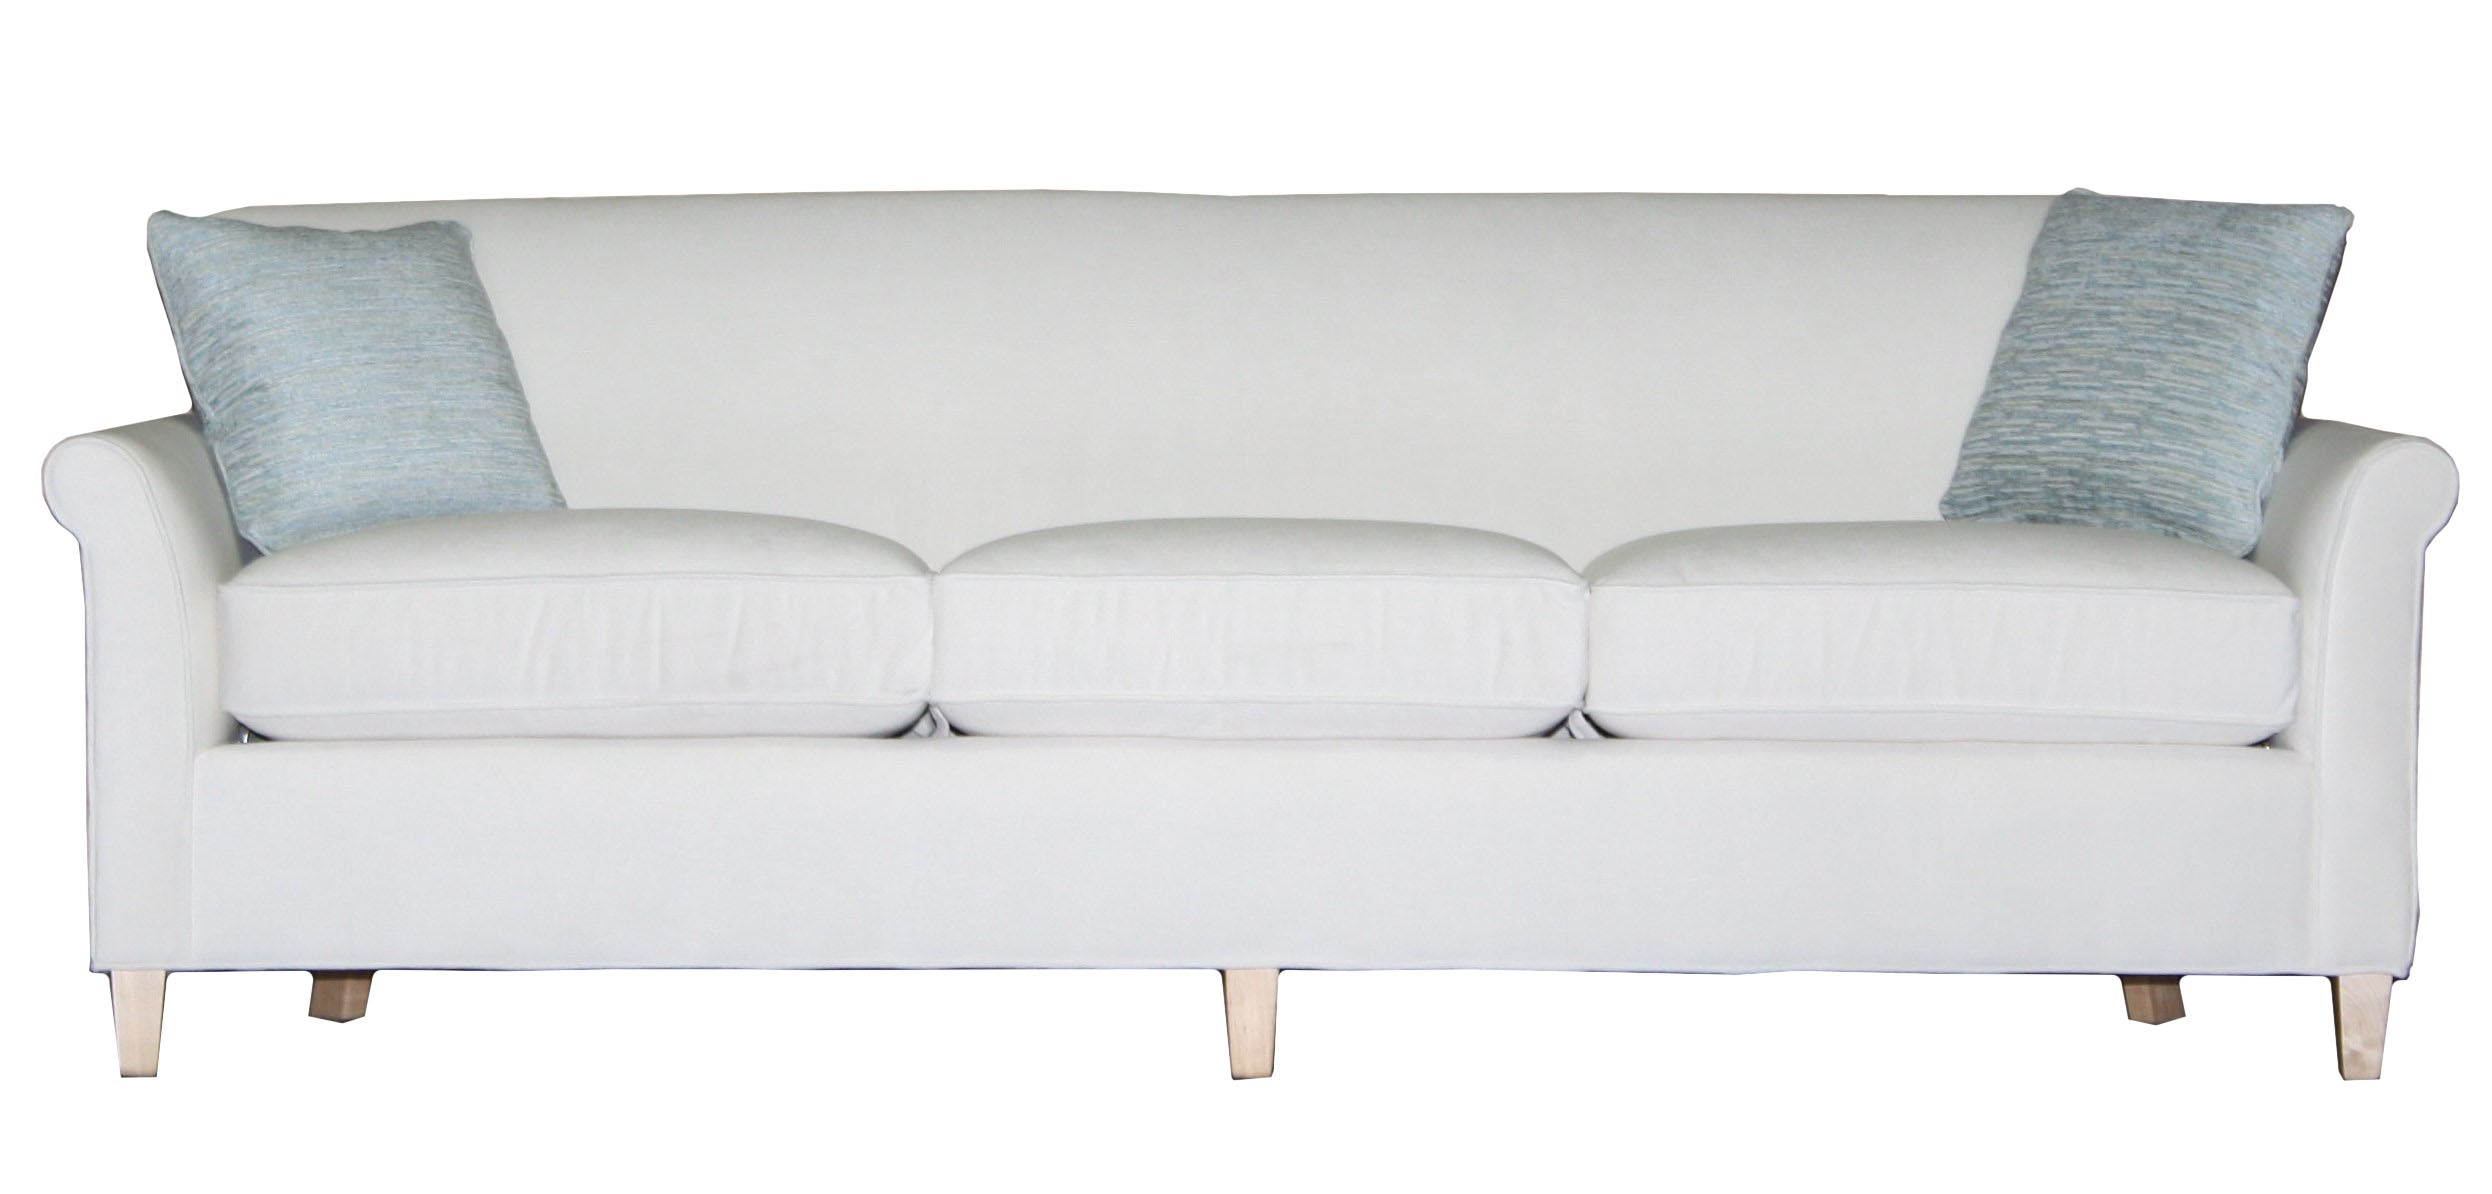 Fisher Non Toxic Longer Condo Sofa From Endicott Home In Maine   01